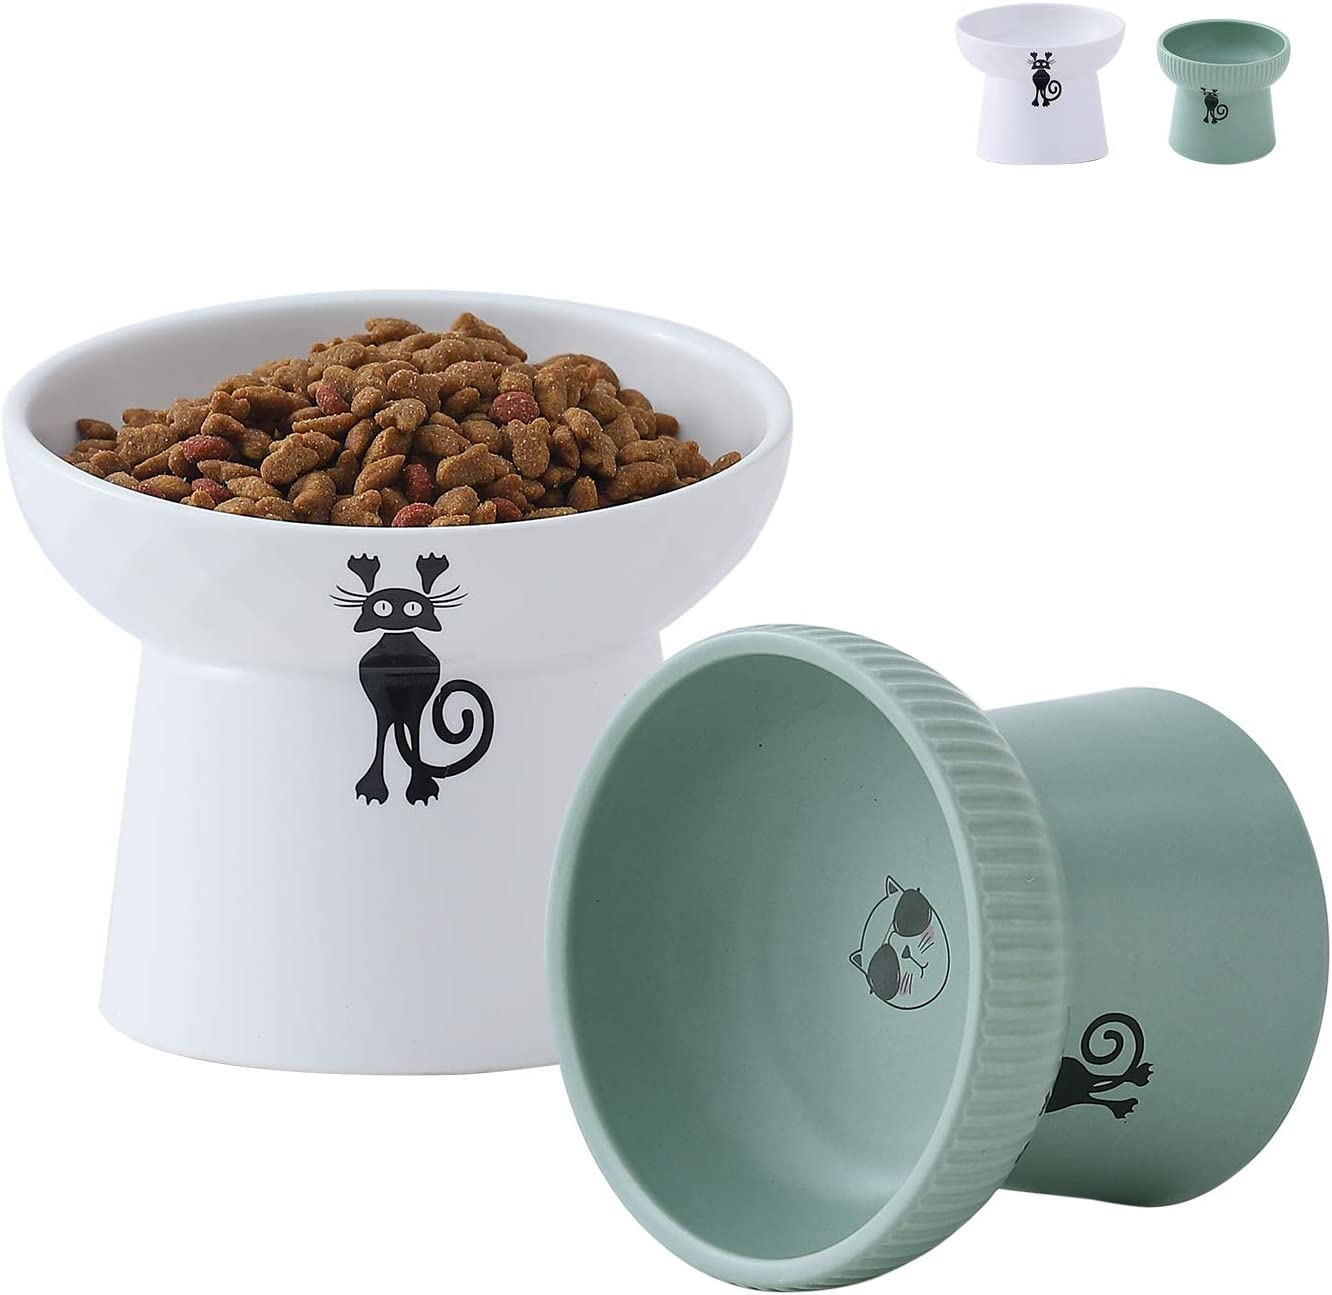 TAMAYKIM 12 OZ & 8 OZ Ceramic Raised Cat Bowls, Food and Water Bowls Set for Cats, Porcelain Elevated Stress Free Feeding Pet Dish, Dishwasher and Microwave Safe, 2 Pack (White & Green)